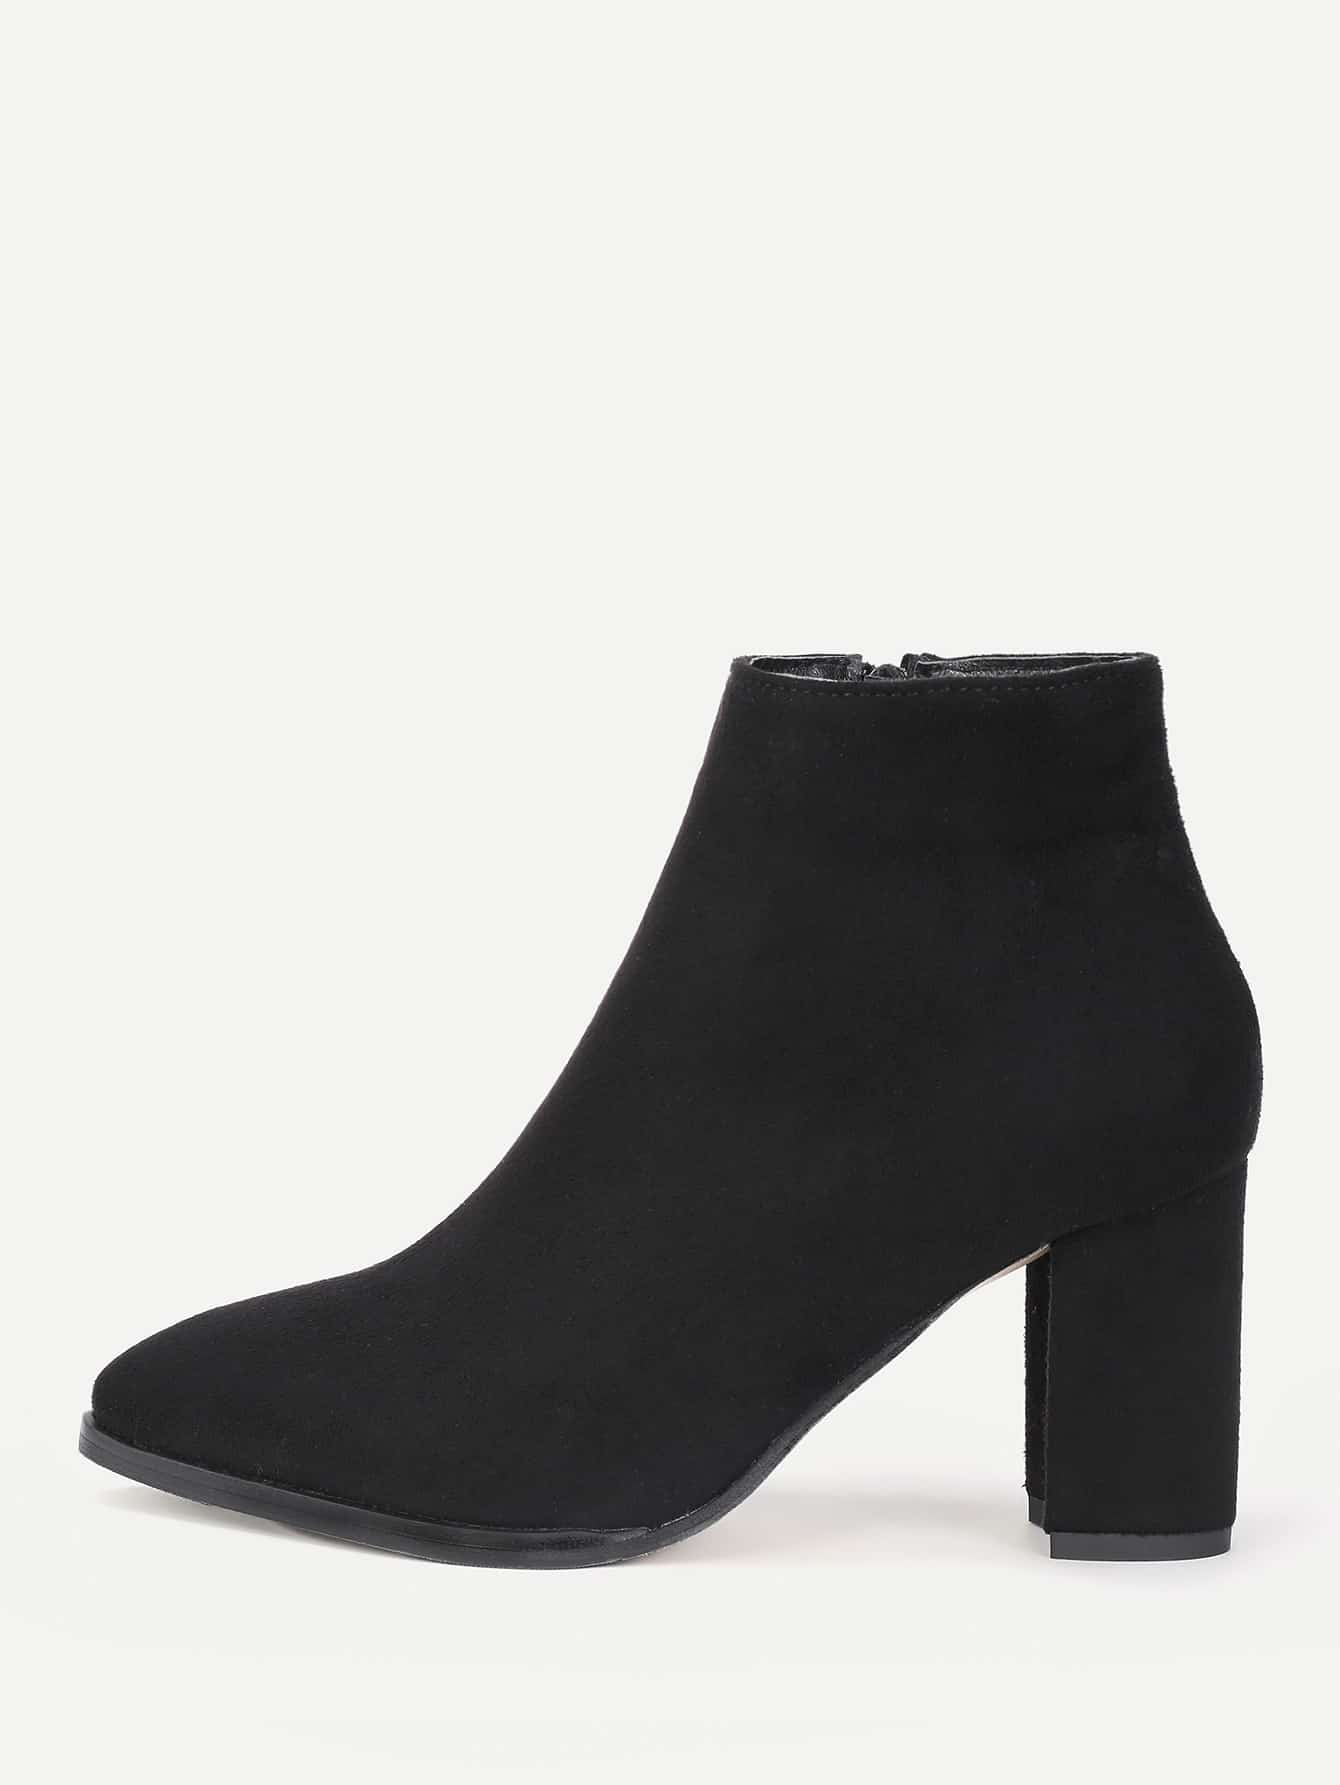 Image of Almond Toe Side Zipper Ankle Boots